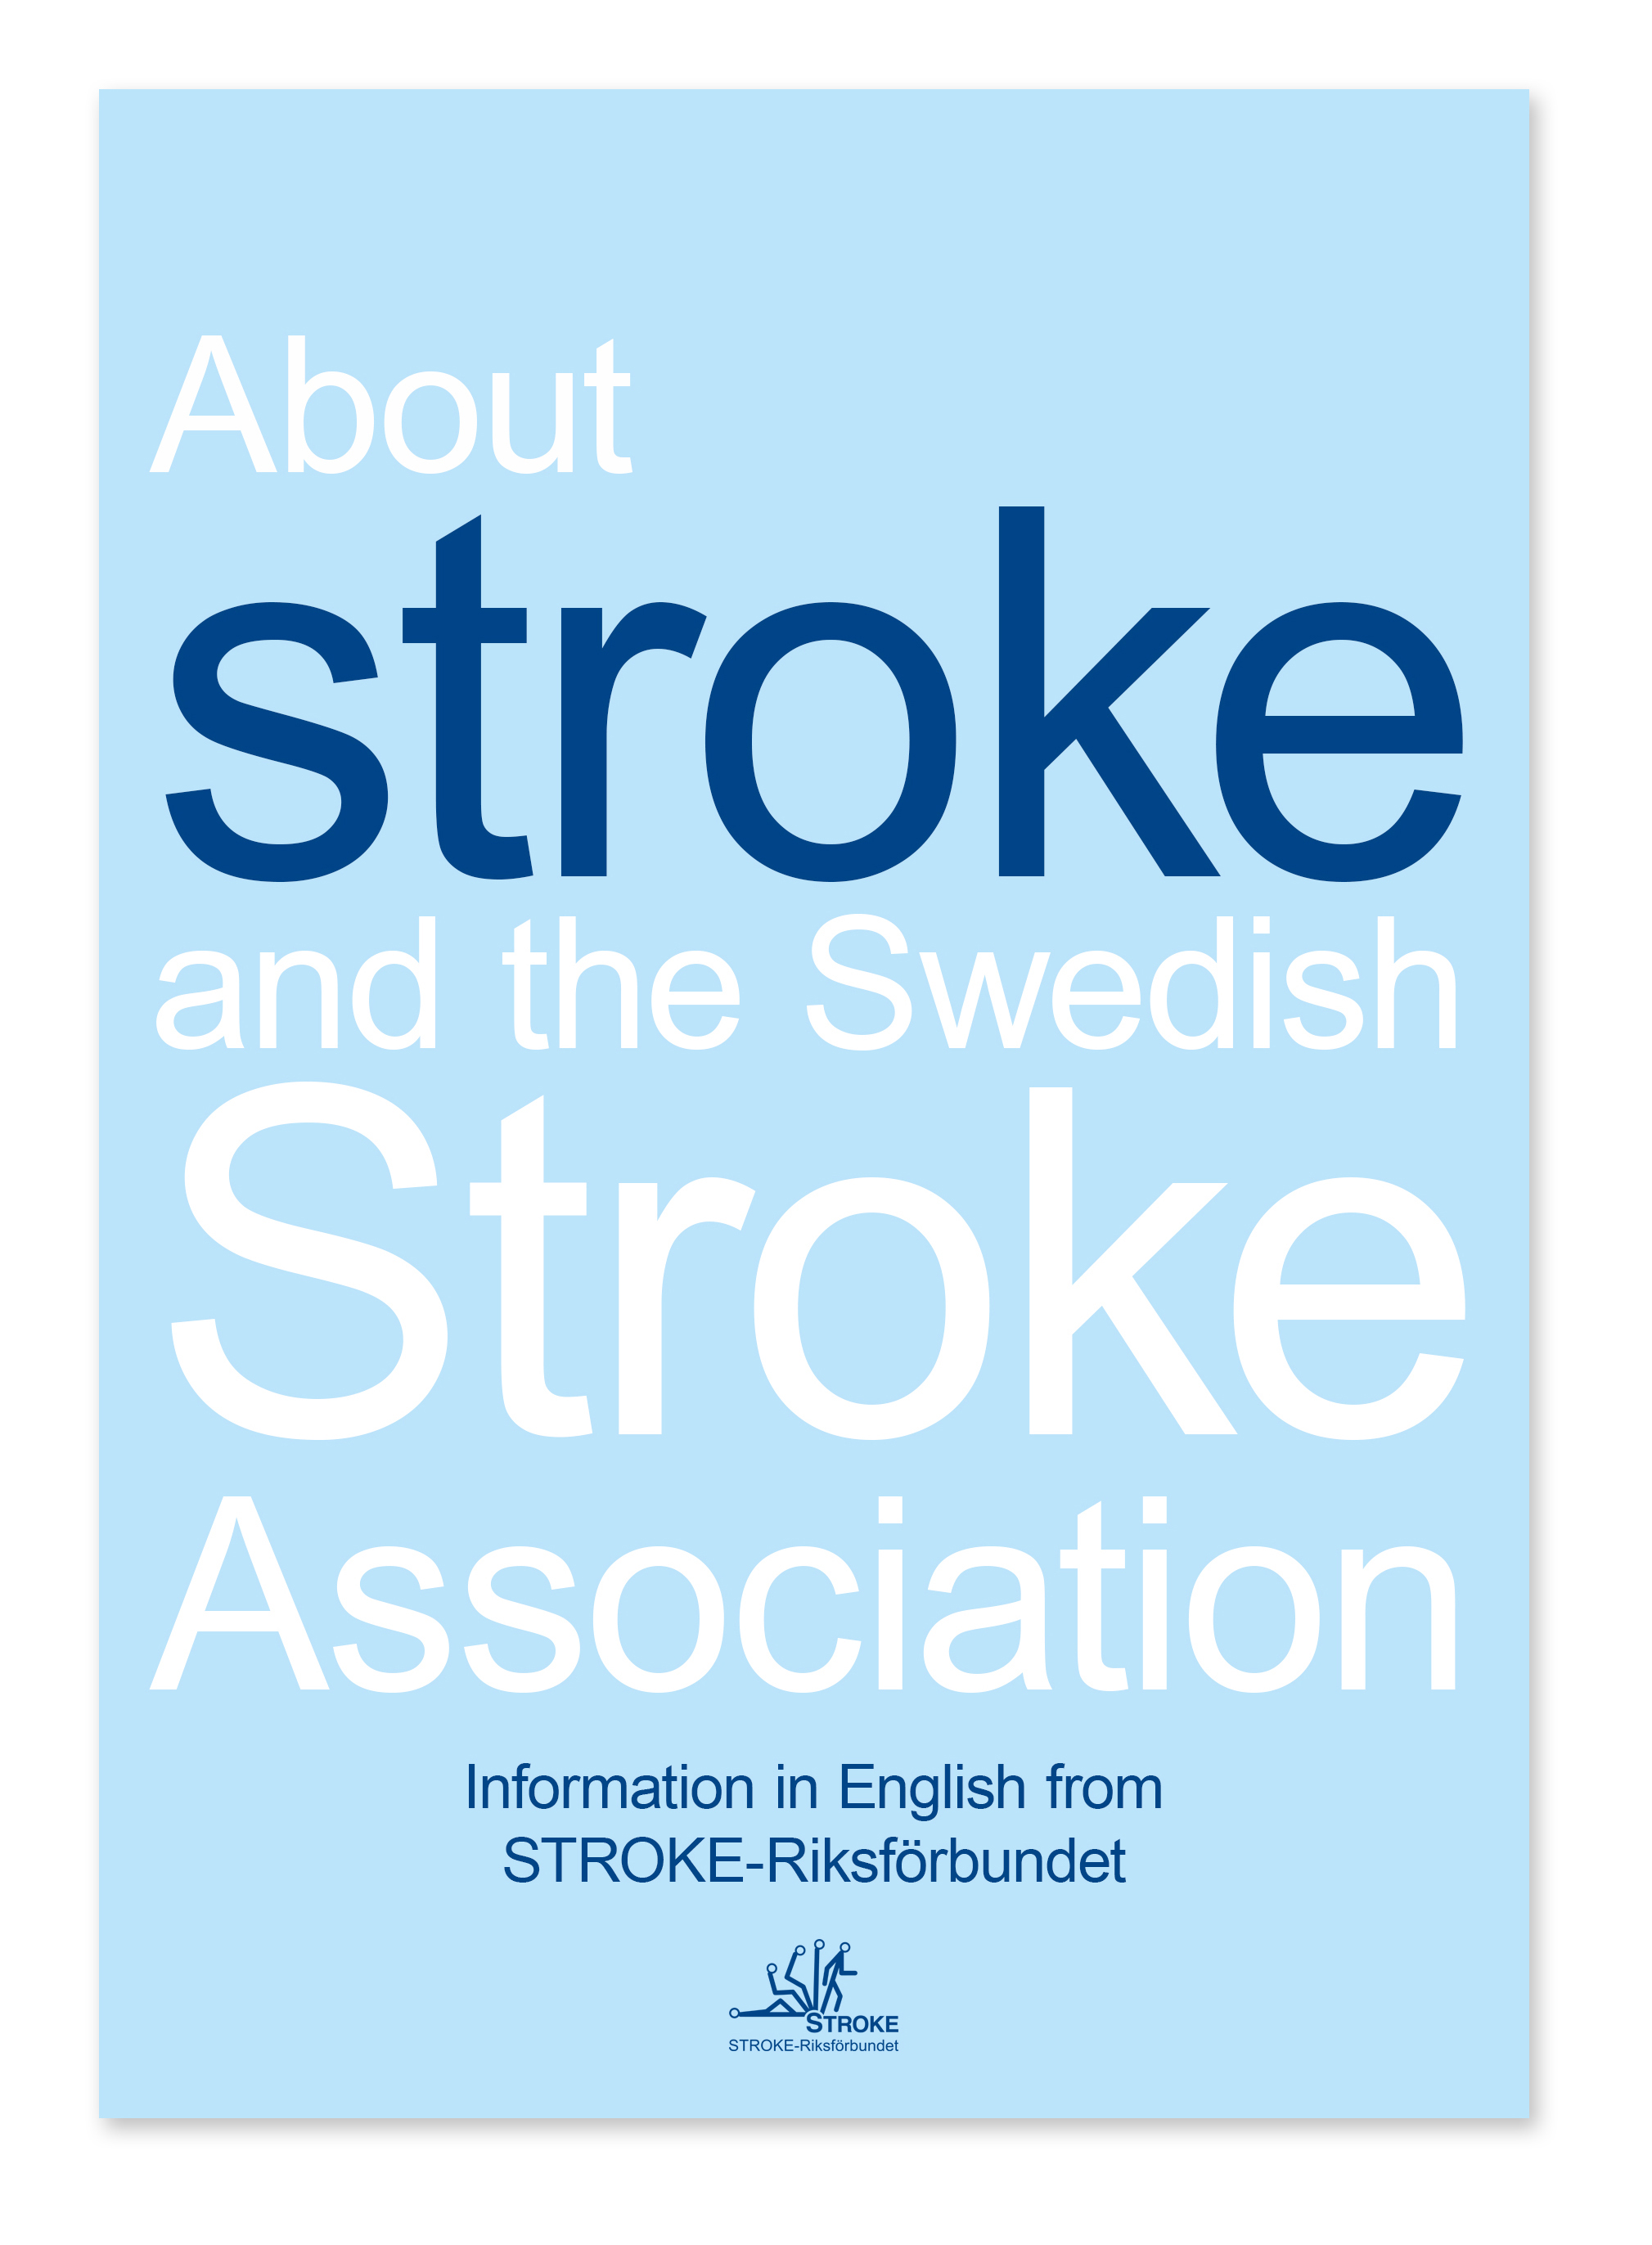 Framsida från informationsfoldern About stroke and the swedish stroke association